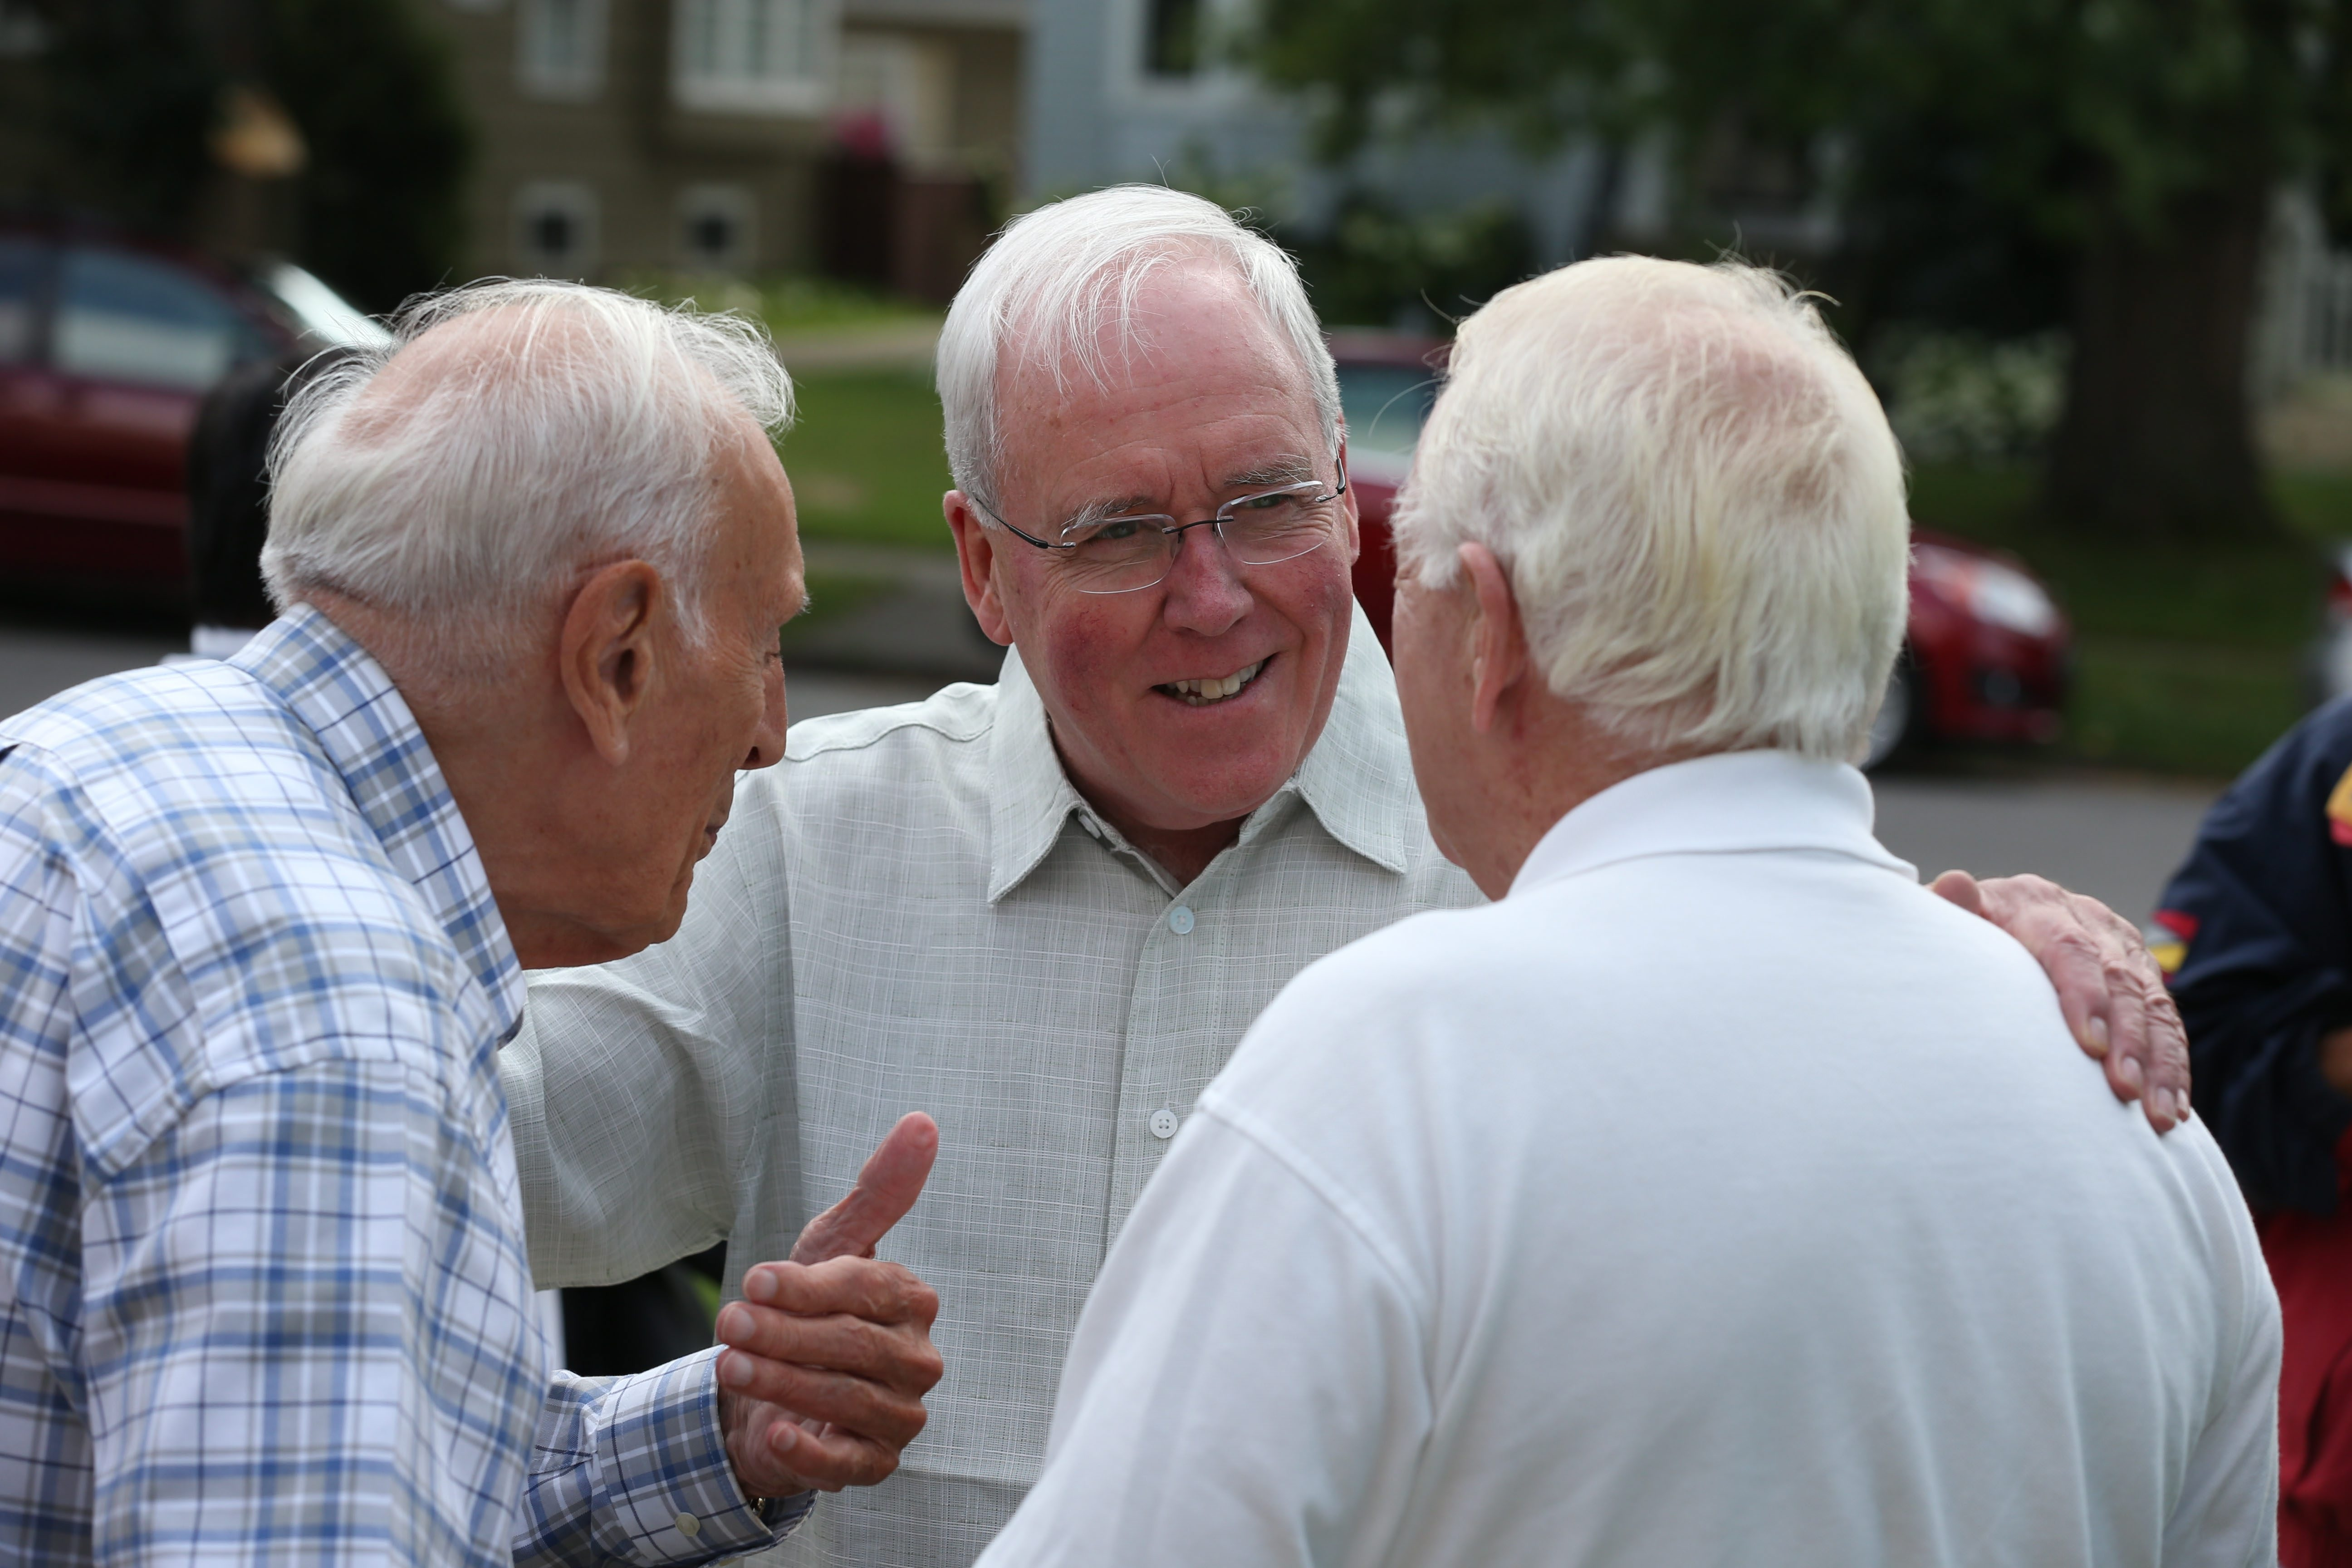 Bishop Richard J. Malone, center, talks with fellow priests outside St. Mark Church in Buffalo, during a casual barbecue for priests, Wednesday, July 31, 2014. {Photo by